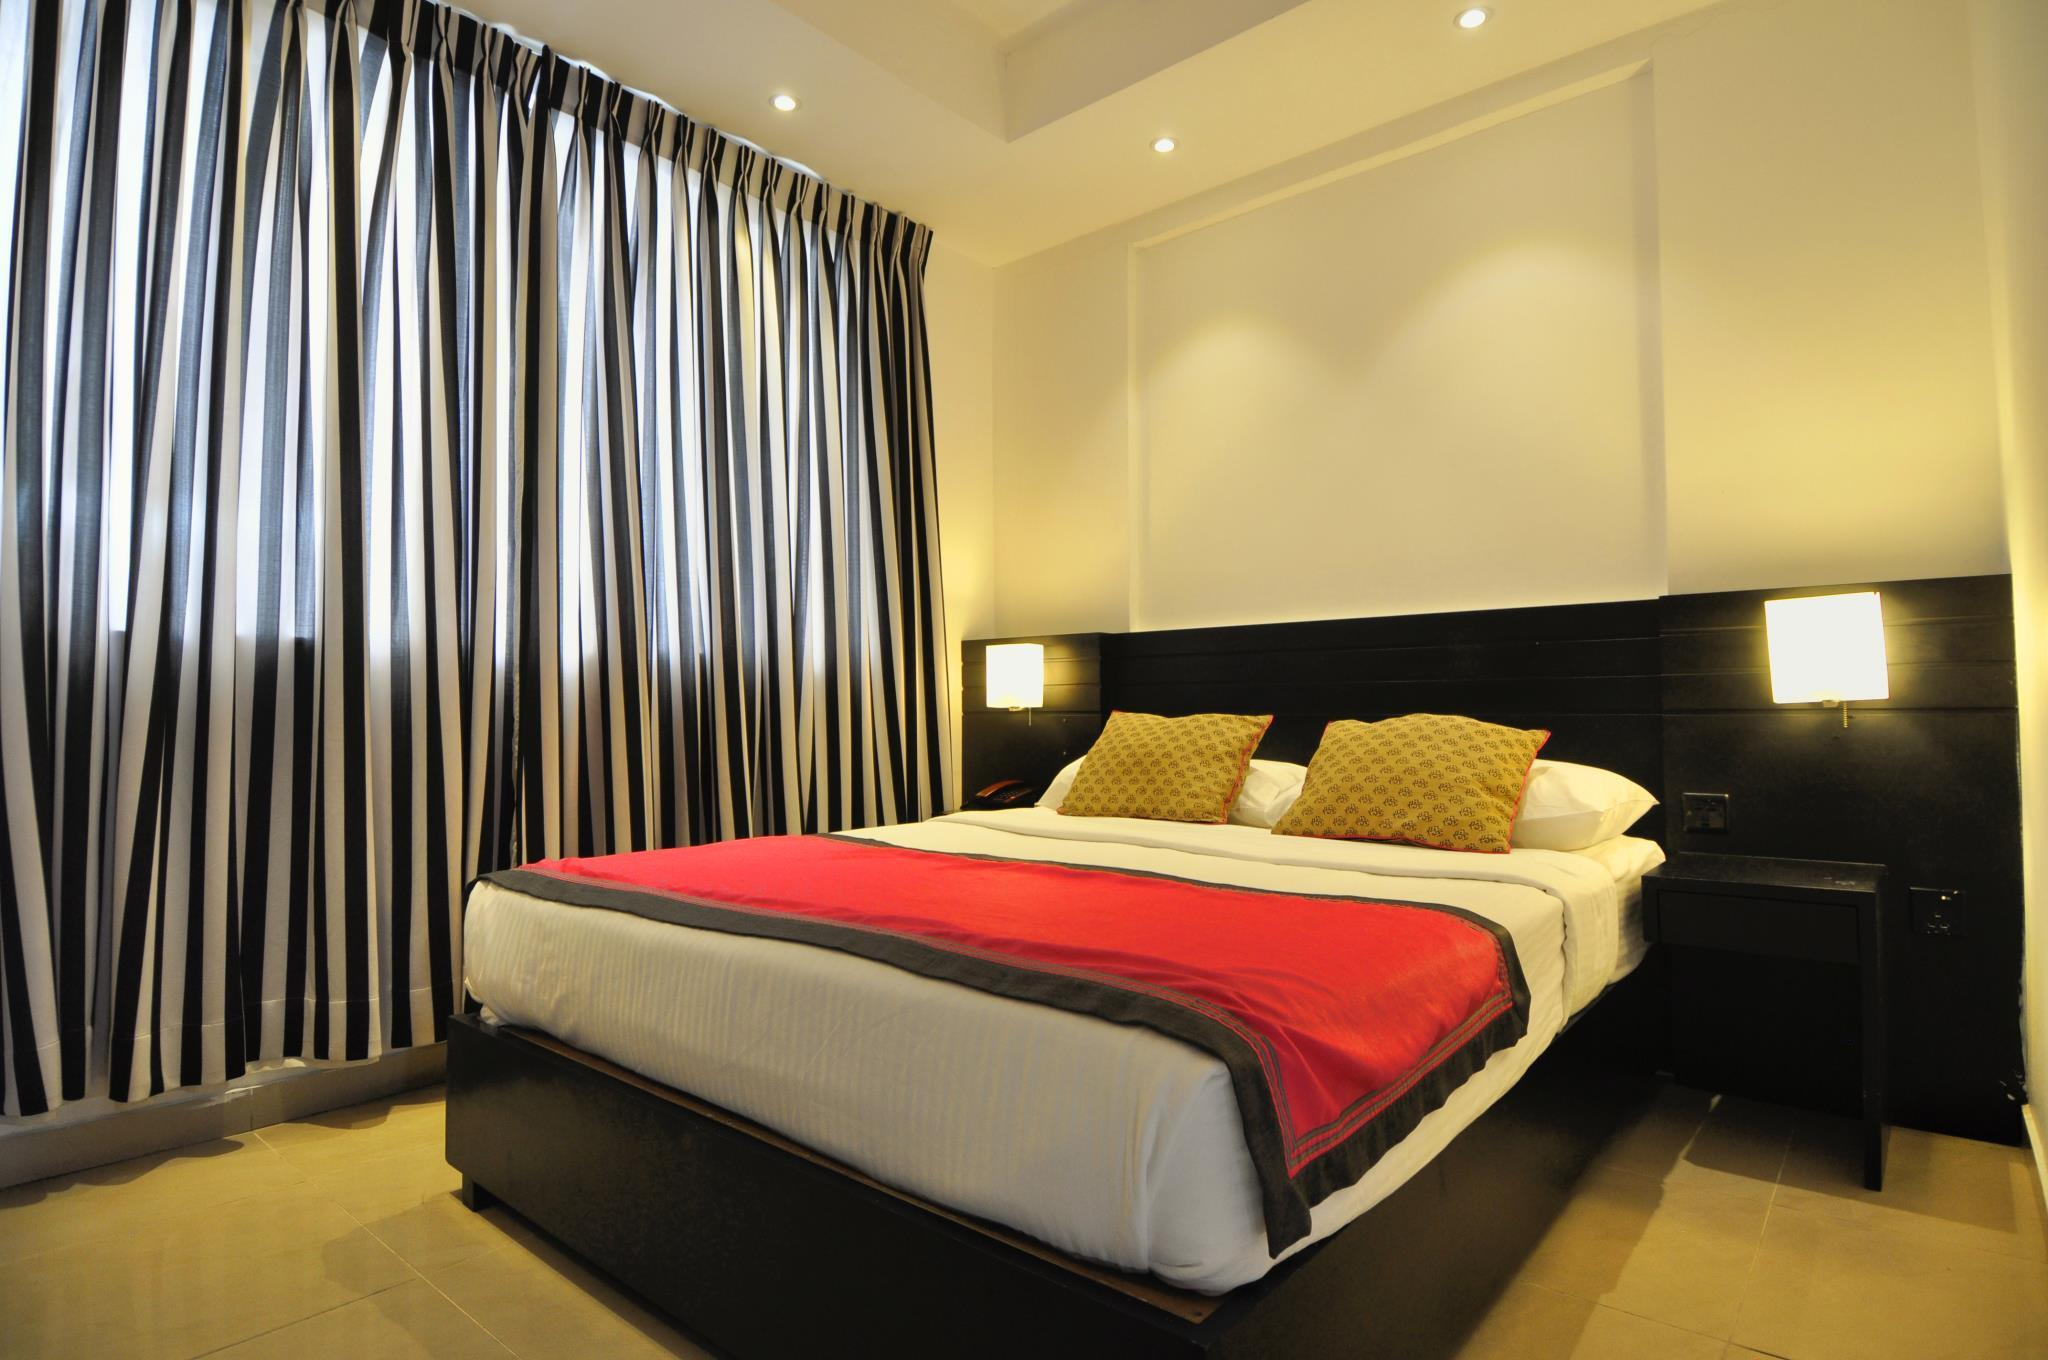 Kamar Single Pribadi (Single Private Room)